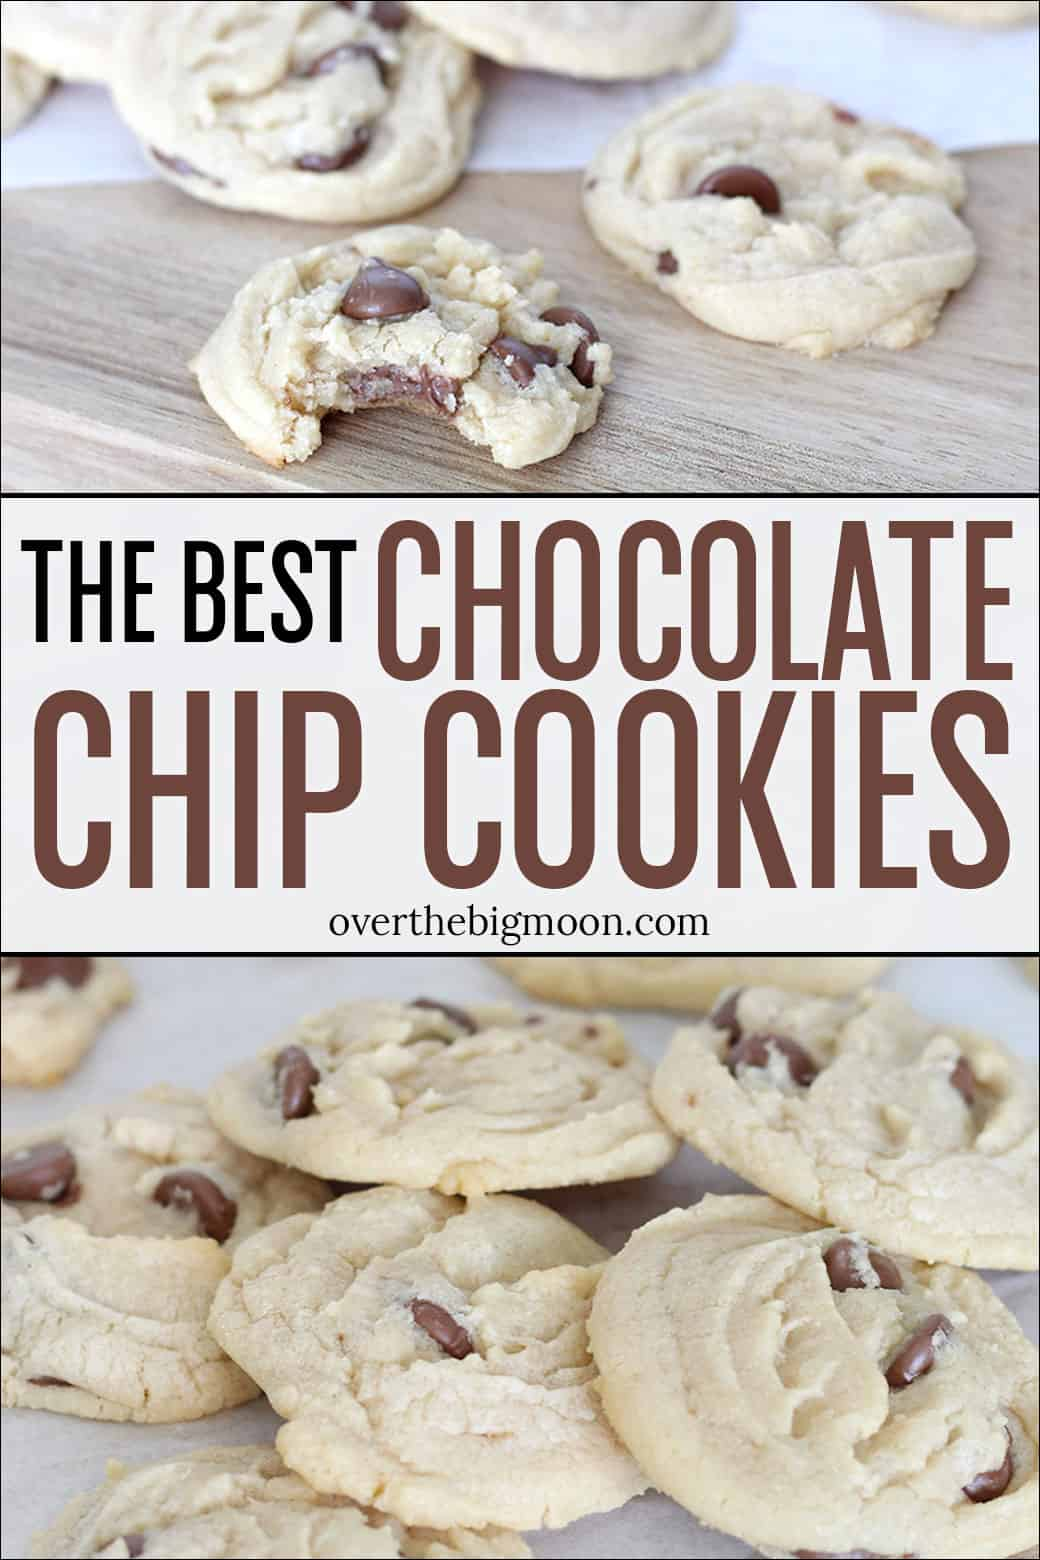 These are the ALL TIME Best Chocolate Chip Cookies! They are so light and fluffy! You'll never need another Chocolate Chip Cookie recipe again!